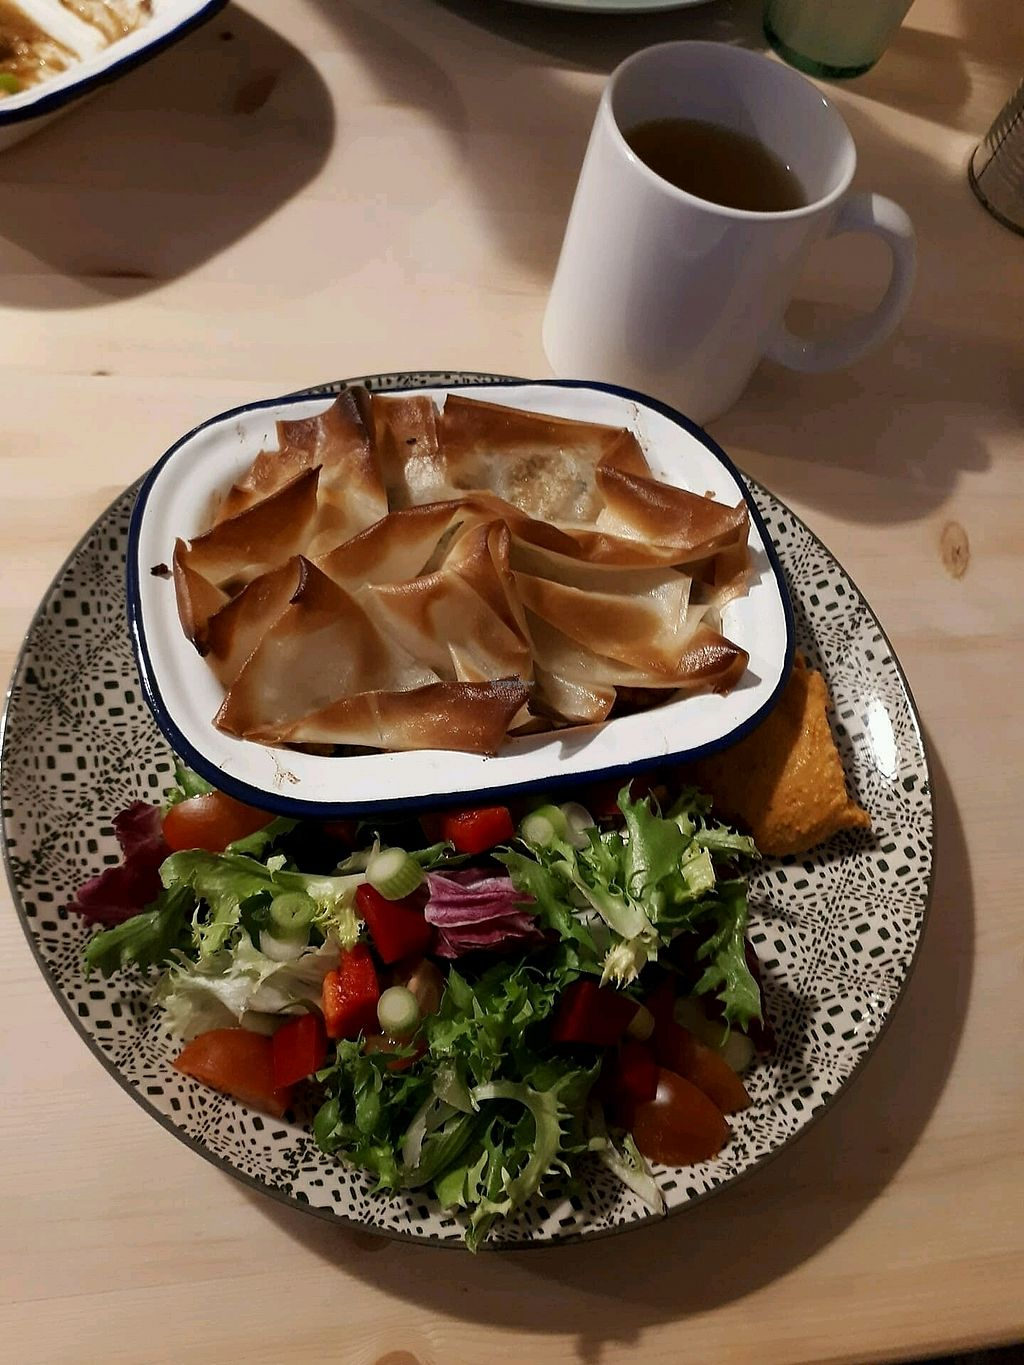 """Photo of The Greenhouse Eatery  by <a href=""""/members/profile/IngaL."""">IngaL.</a> <br/>Morocco pot pie <br/> March 30, 2018  - <a href='/contact/abuse/image/112970/378506'>Report</a>"""